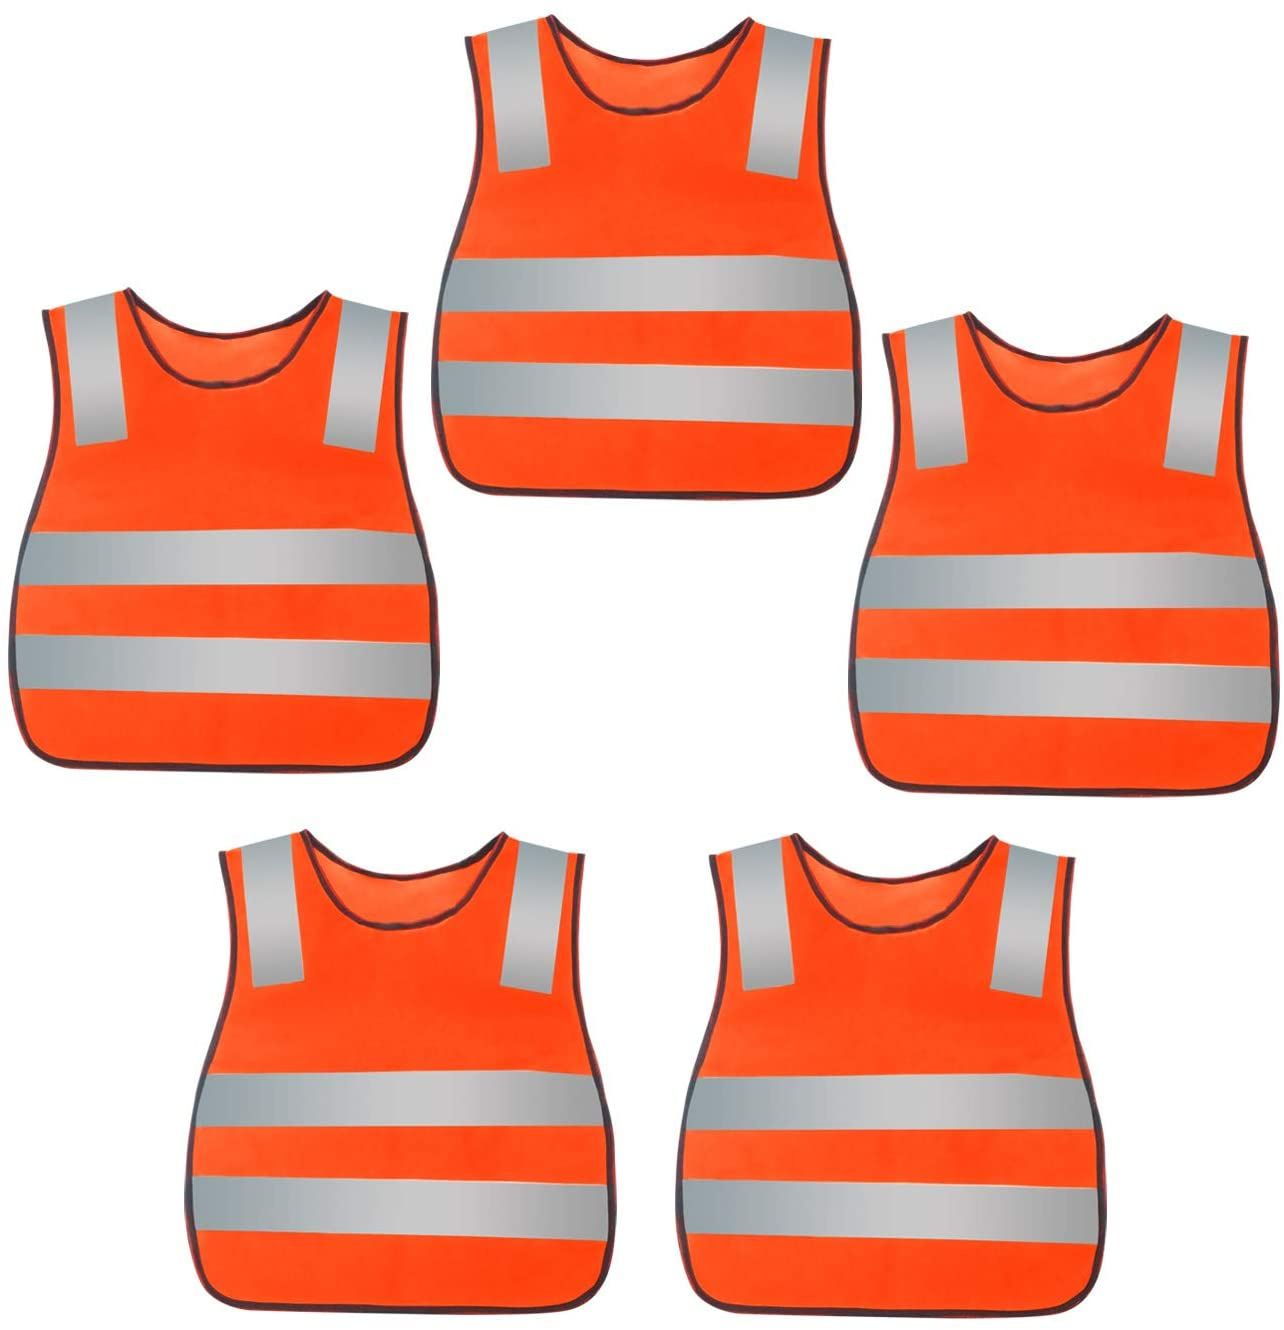 YIKYI 5 Pack Eflective Vest Safety Vest For Kids Outdoor's Running Jogging Walking Construction Cycling